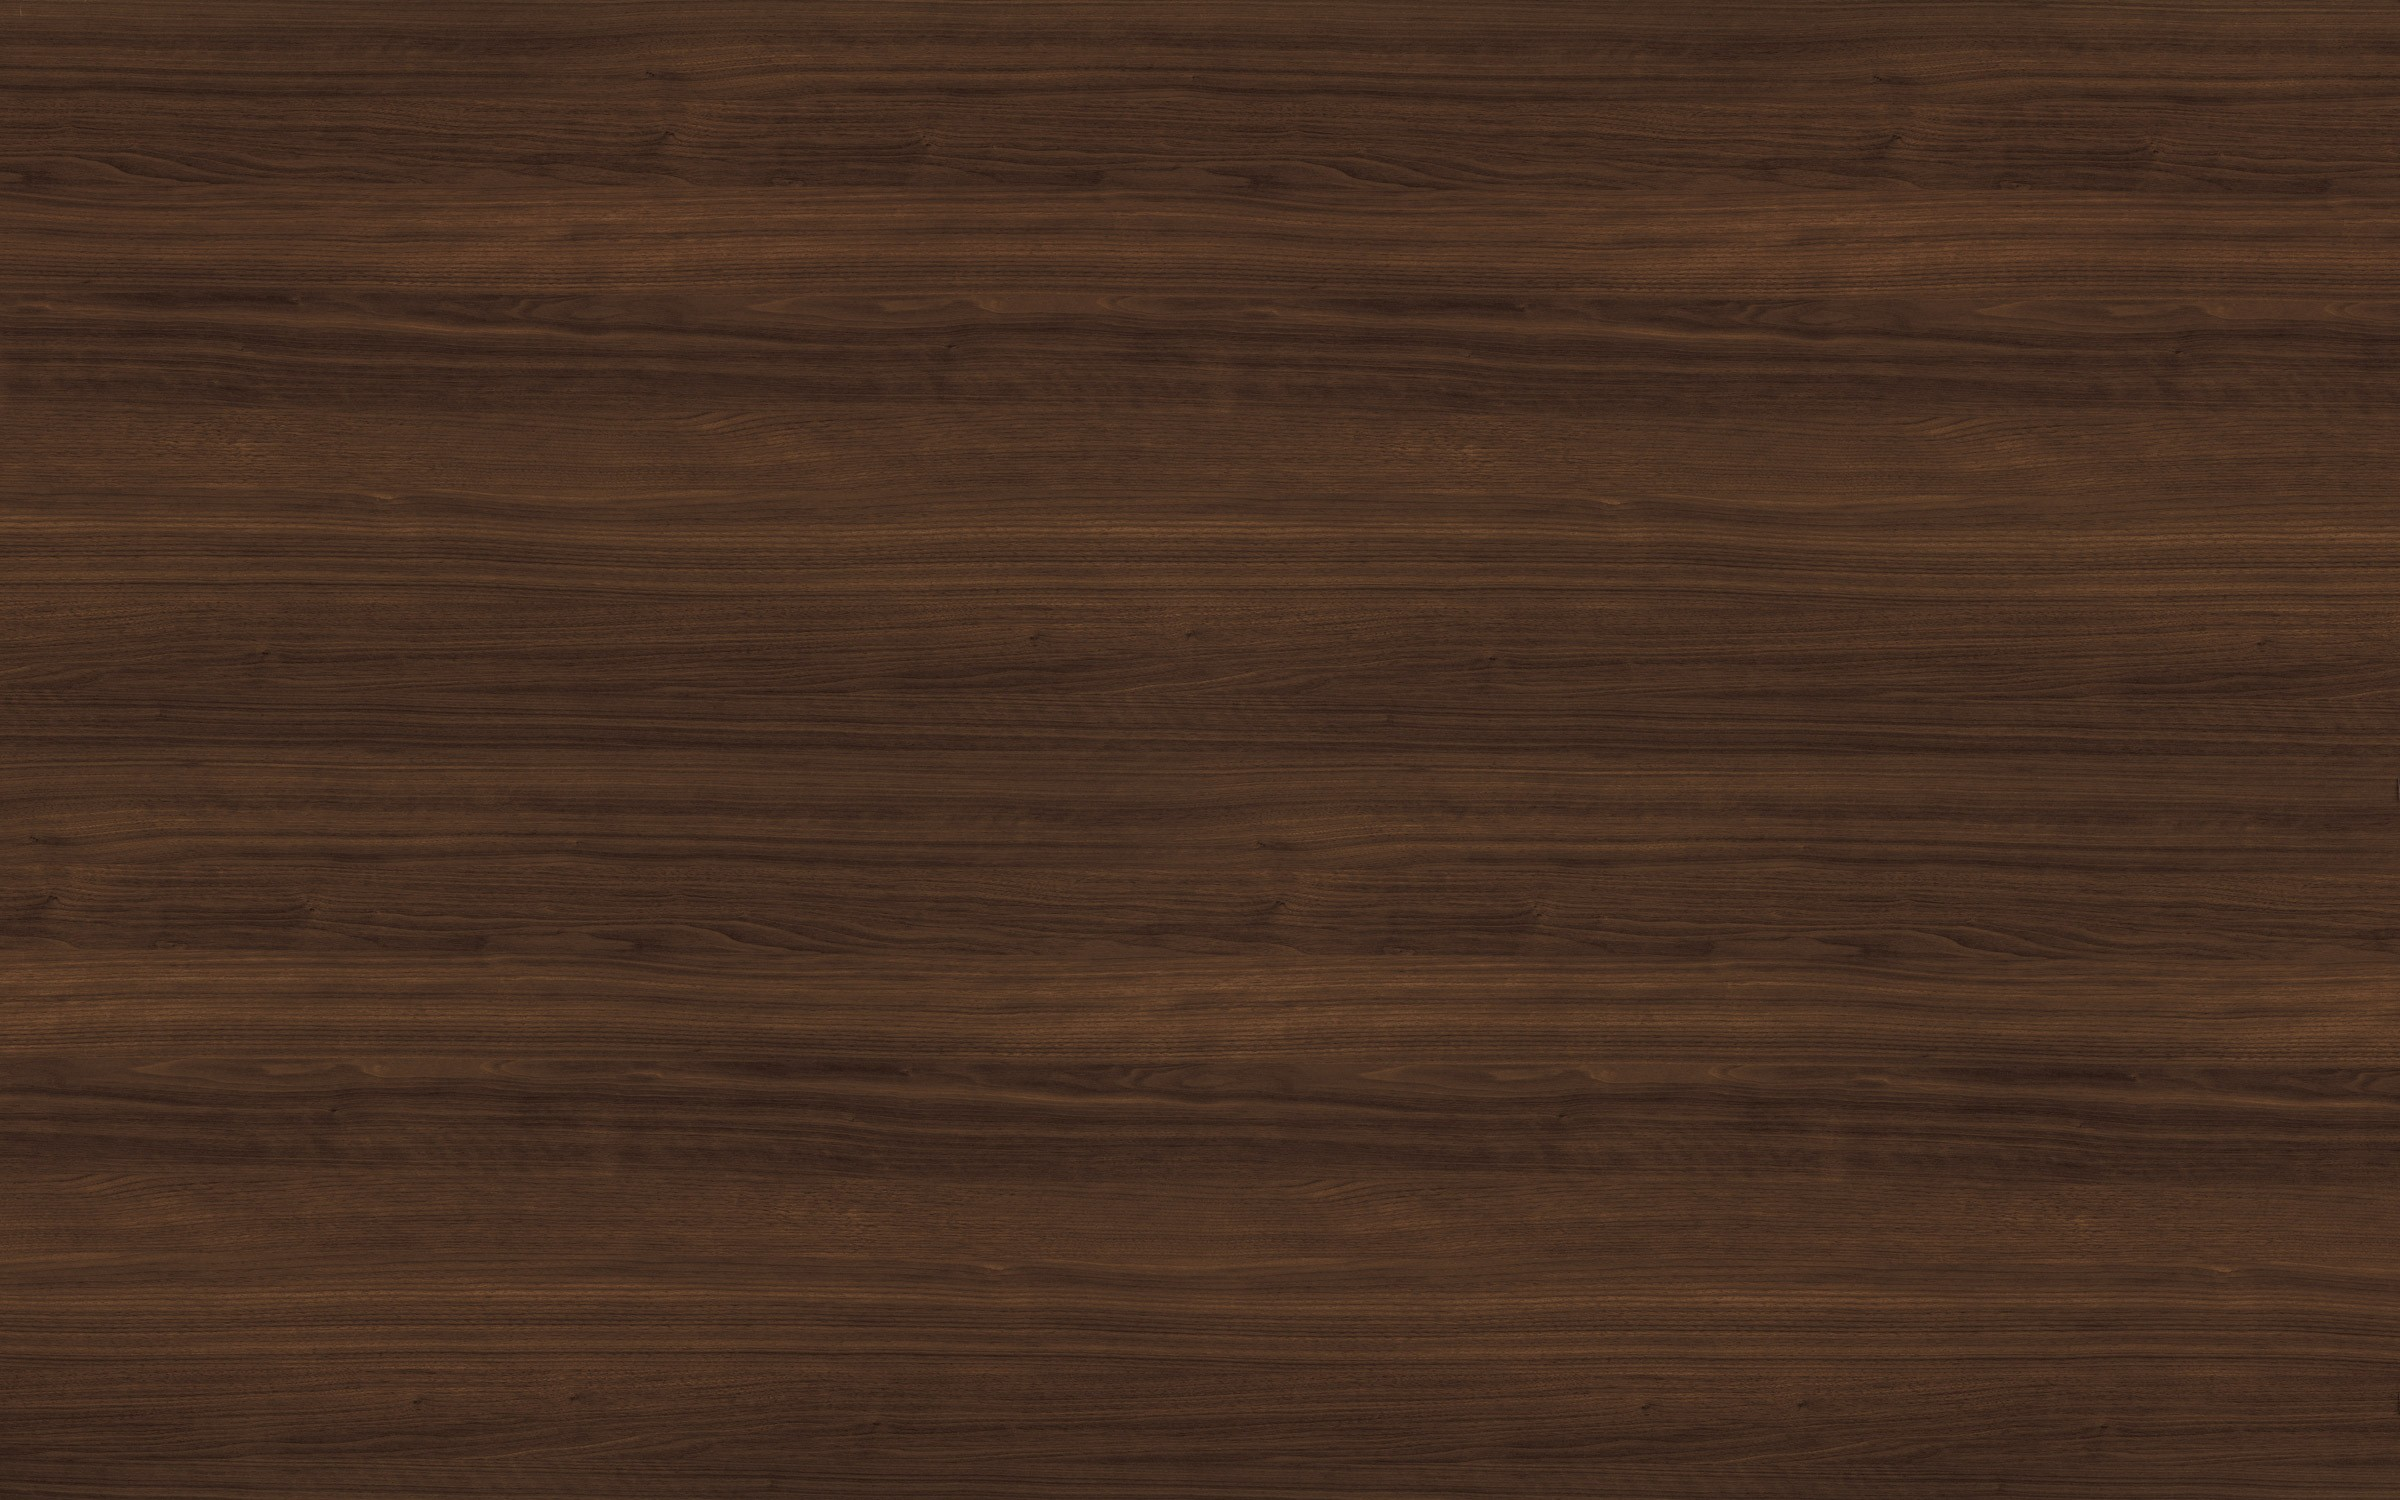 Laminate Colombian Walnut 7943